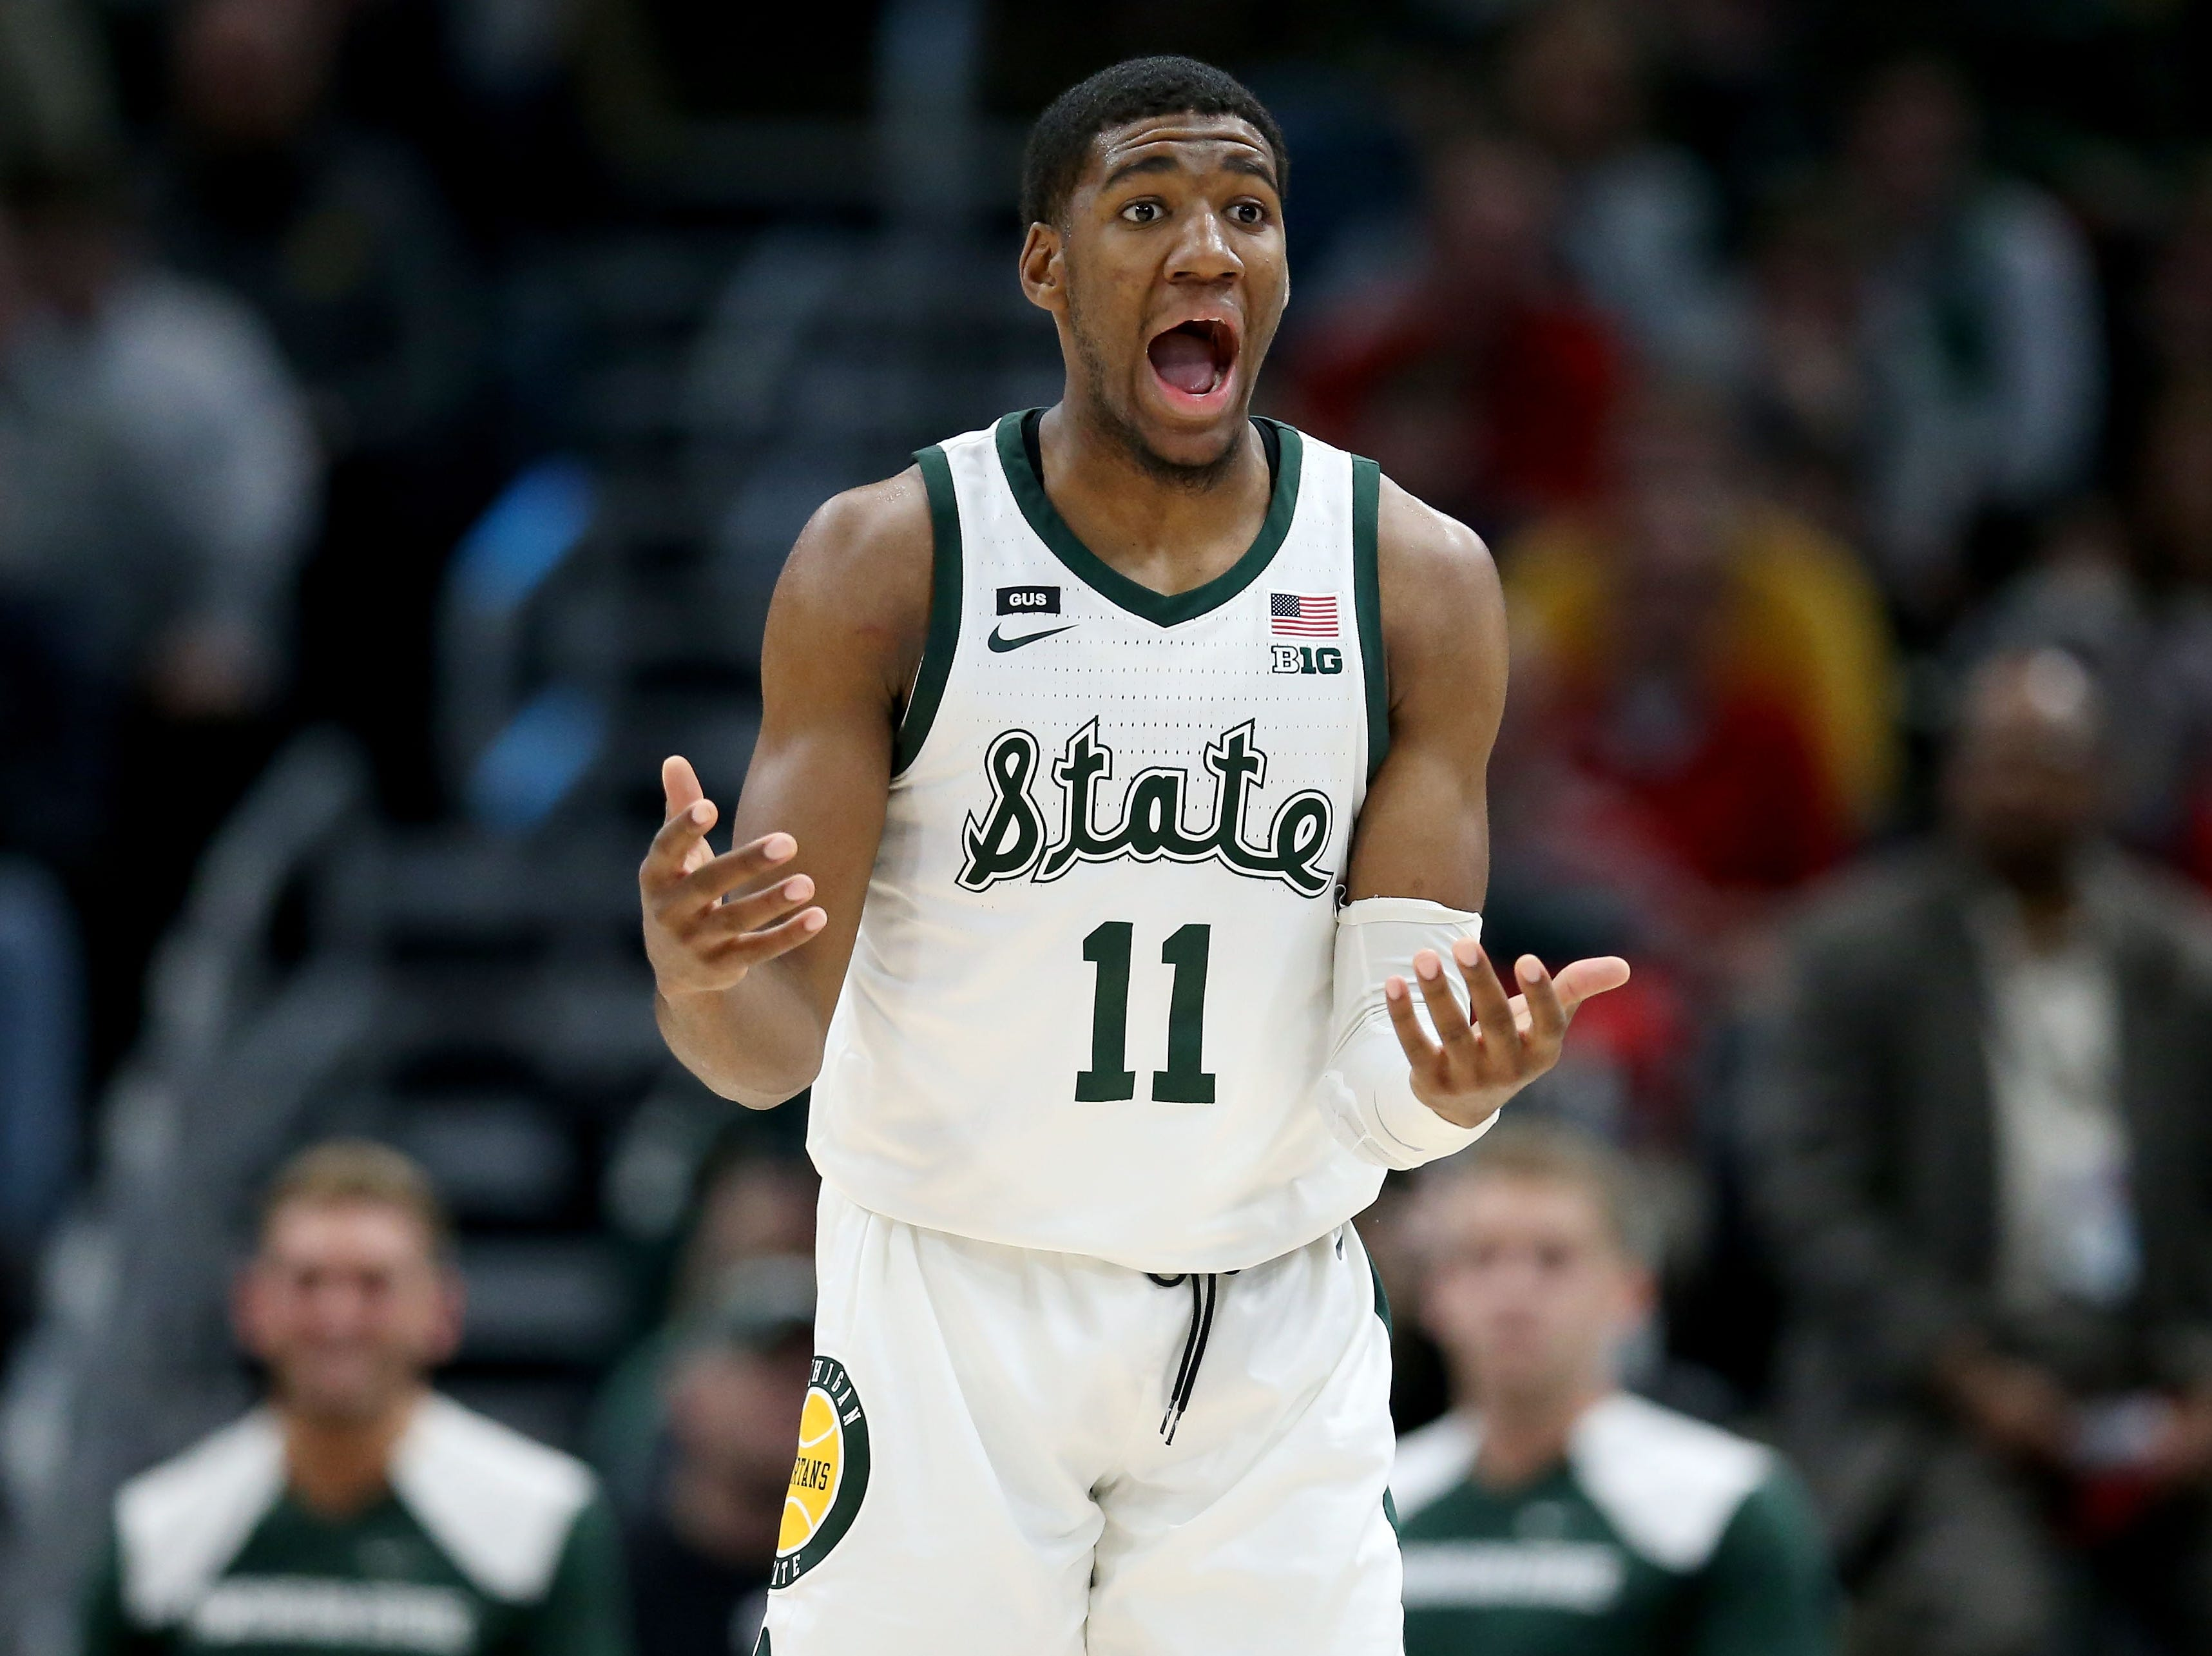 Aaron Henry #11 of the Michigan State Spartans reacts in the second half against the Wisconsin Badgers during the semifinals of the Big Ten Basketball Tournament at the United Center on March 16, 2019 in Chicago, Illinois.